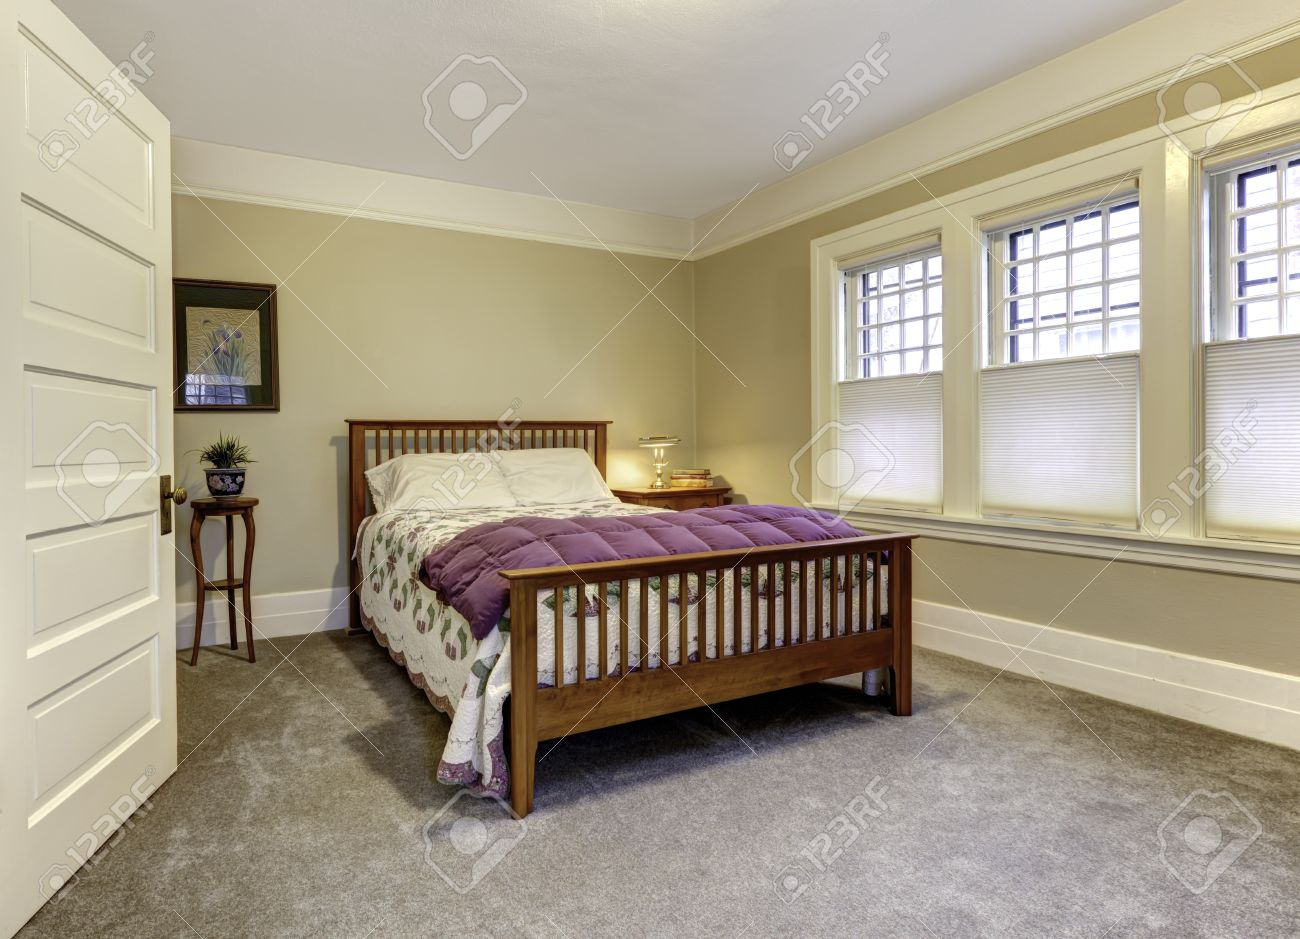 Classic Bedroom With Brown Queen Size Bed, Beige Walls And White ...